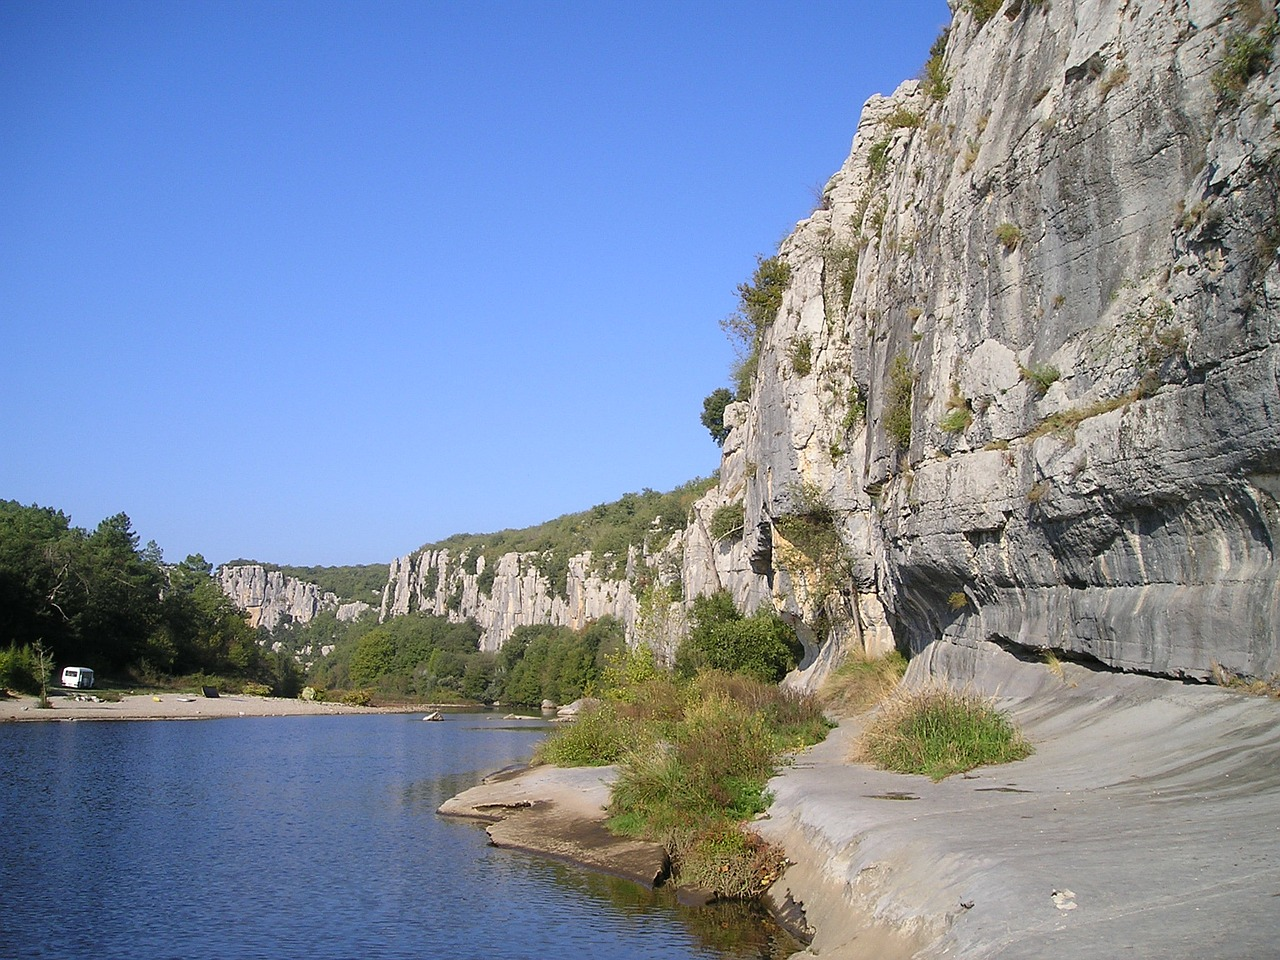 ardeche gorge rock climbing free picture